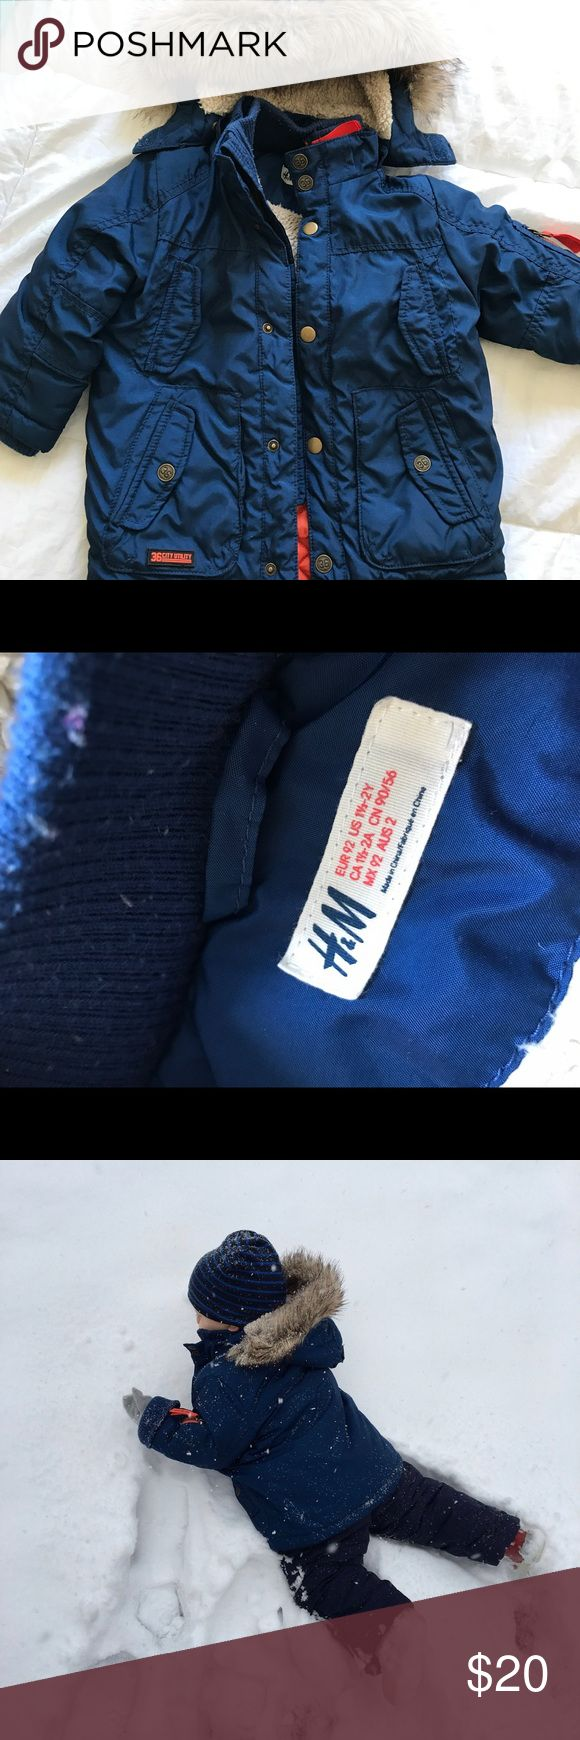 H&M toddler boys winter coat This coat is amazing- super warm and durable and stylish!!! We used it all last winter and it's still in very good condition. Fit is TTS in our experience. H&M Jackets & Coats